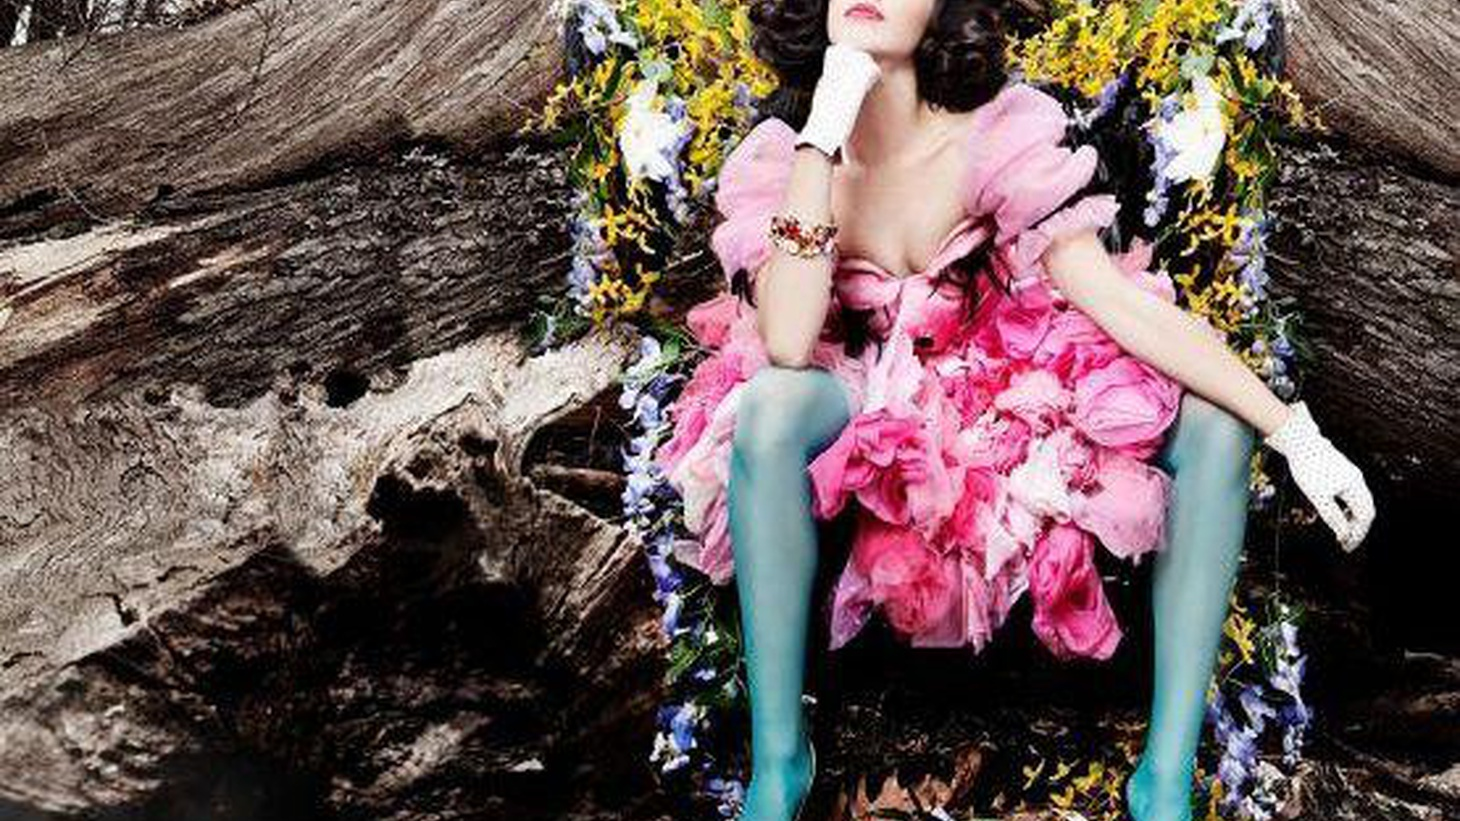 We fell in love with New Zealand singer Kimbra when she joined Gotye on Morning Becomes Eclectic last year...